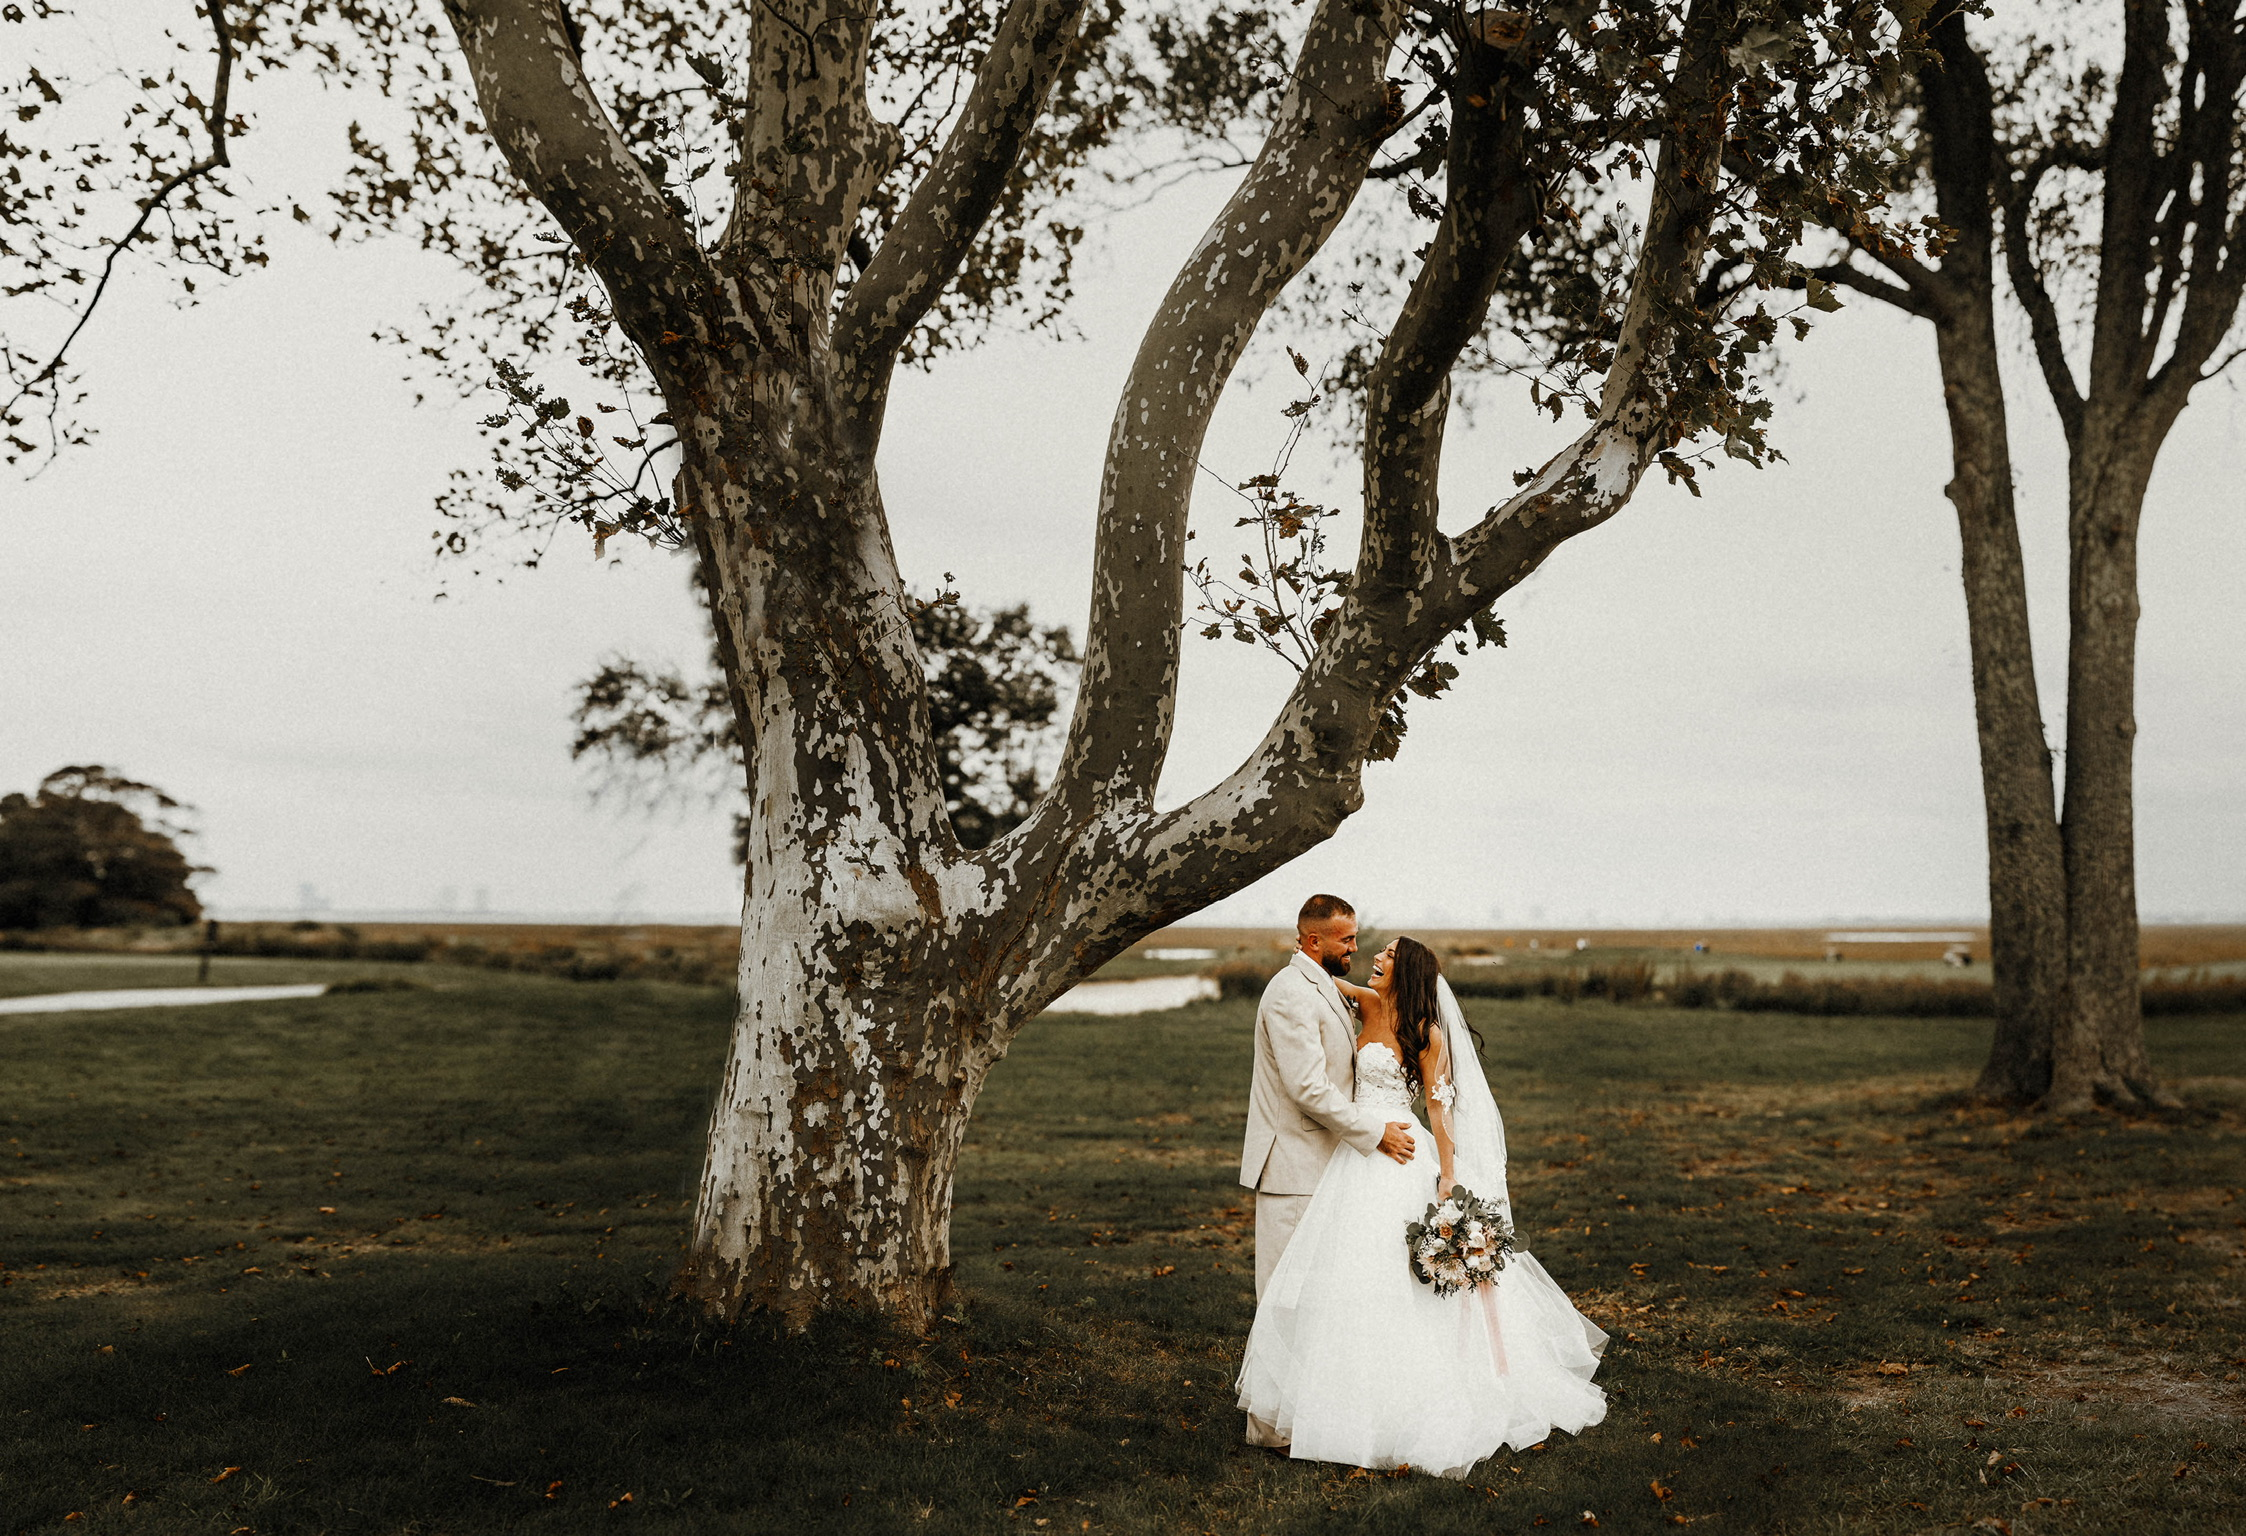 All of our Wedding Vendors: Reviewed | Pine Barren Beauty | wedding portrait, wedding photos, wedding photography, wedding photography ideas, twisted oaks studio